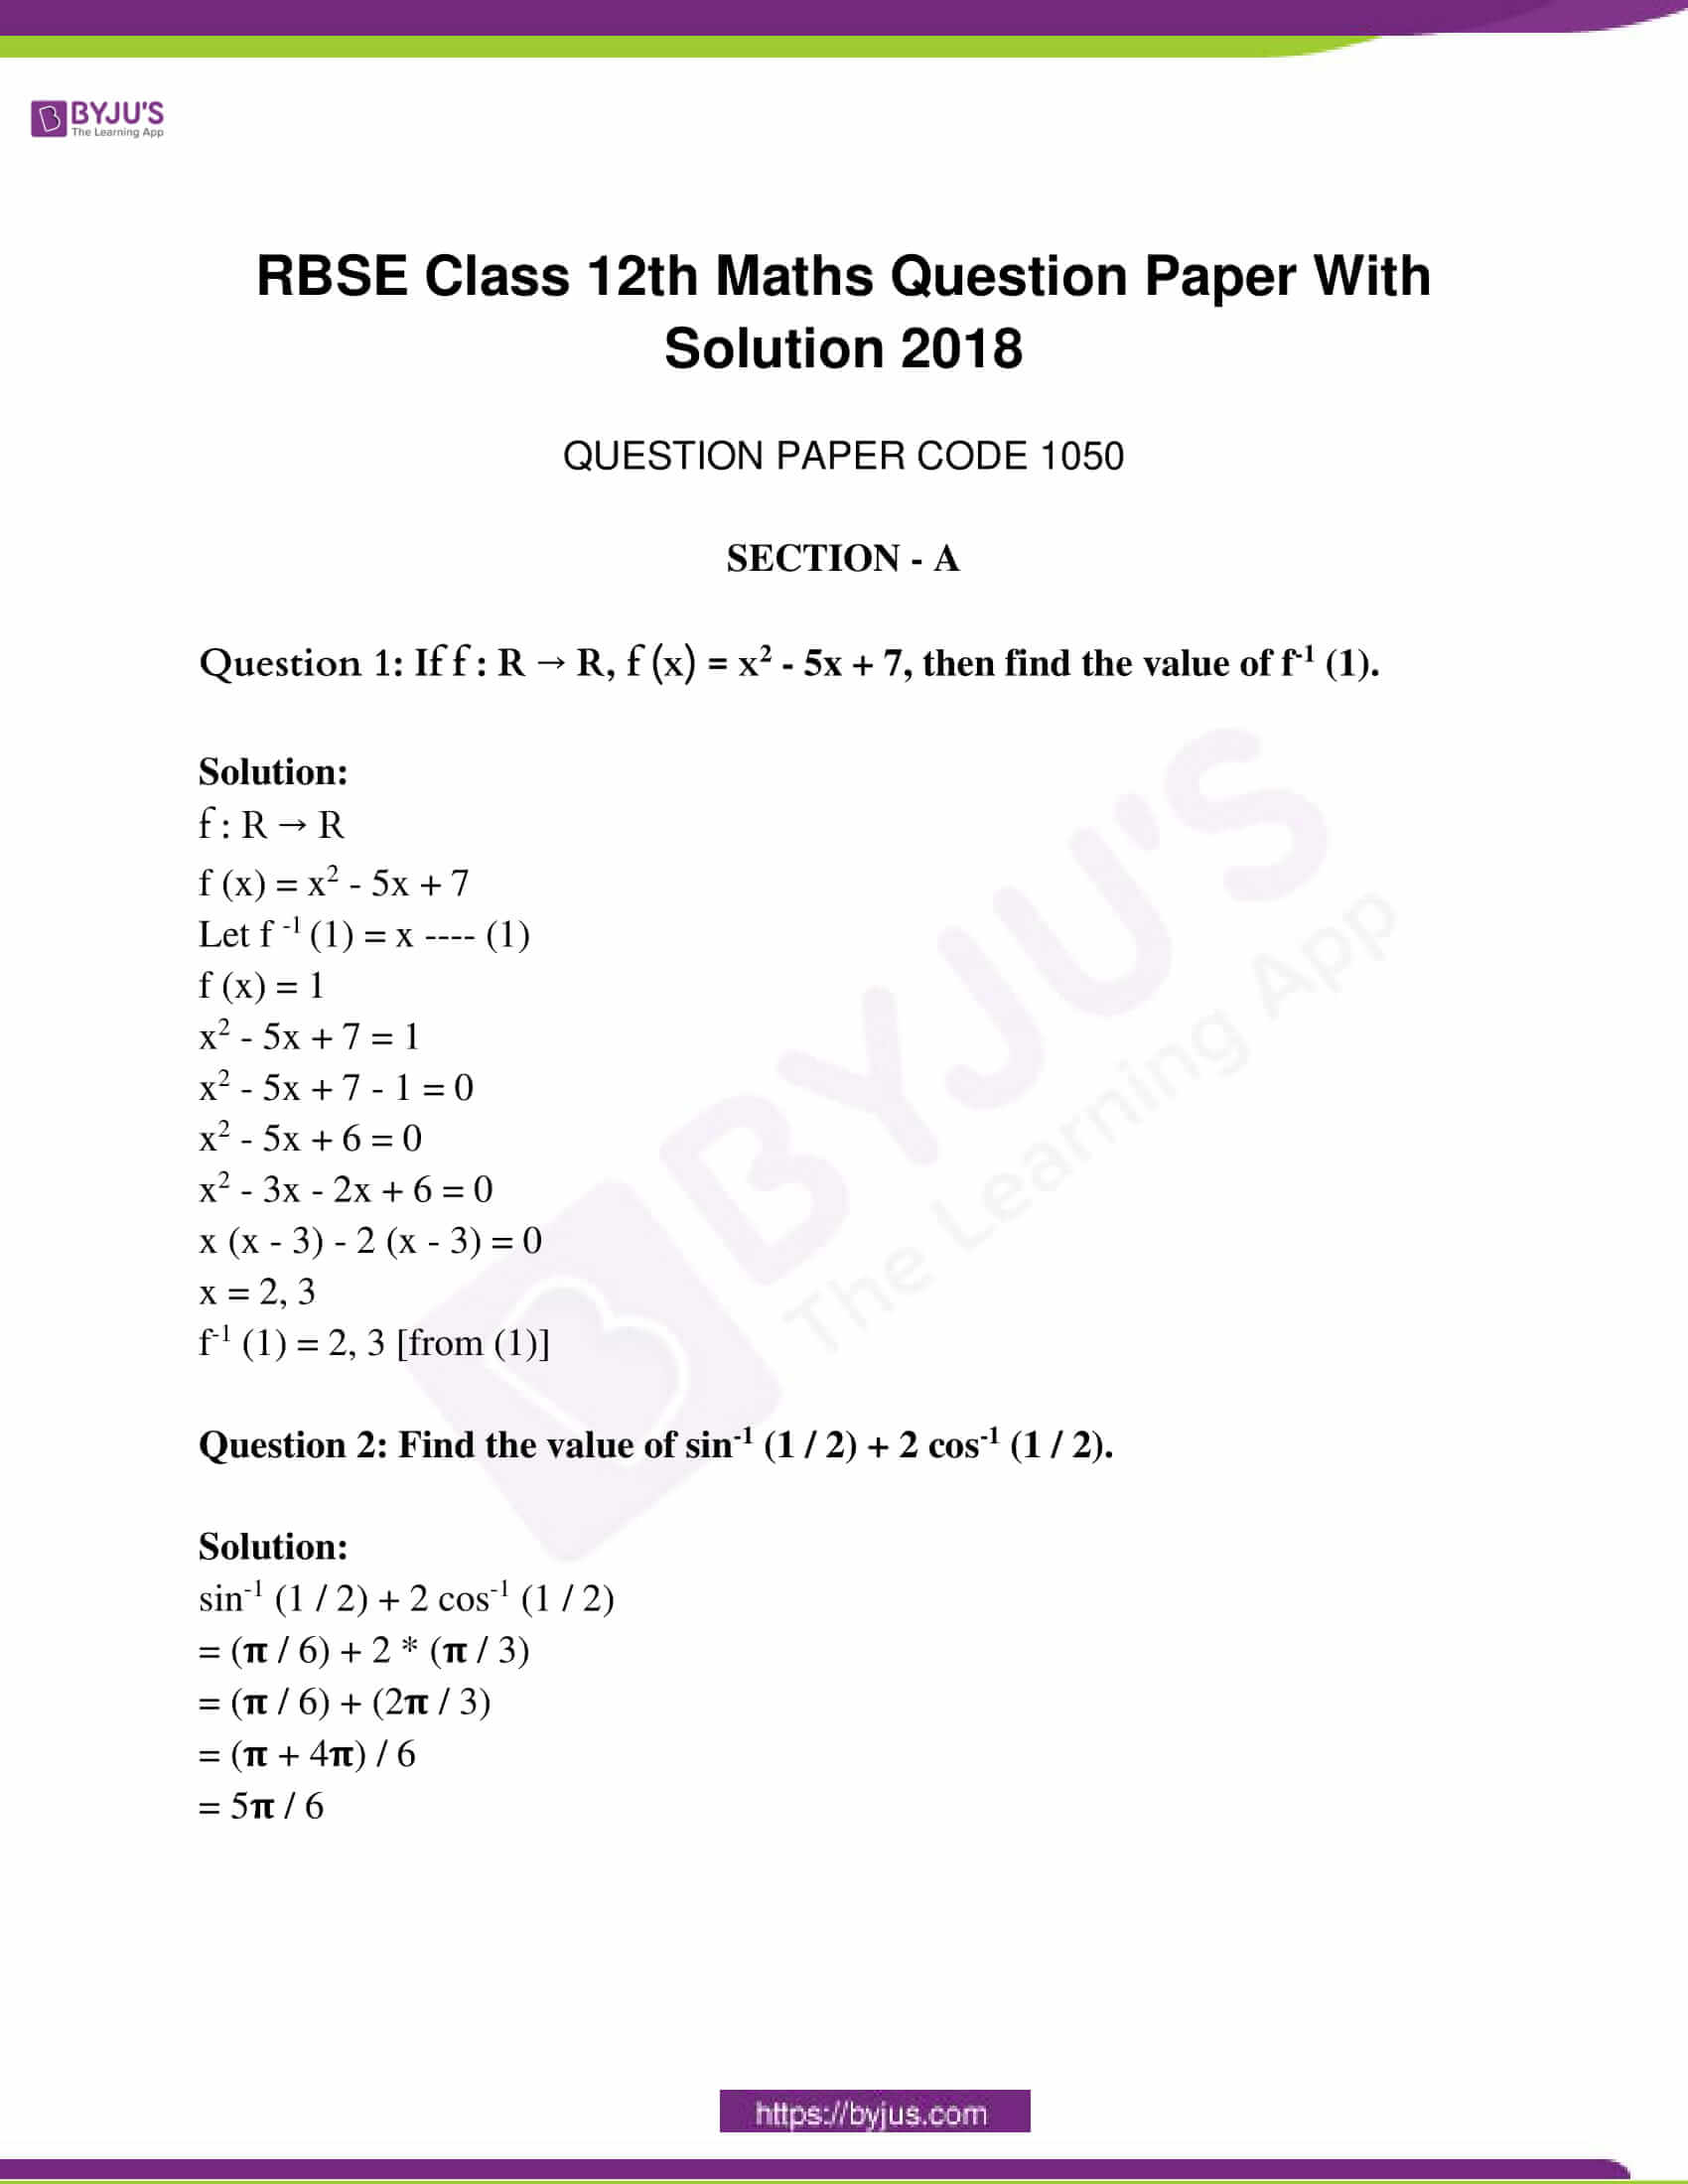 rajasthan class 12 exam question paper solutions march 2018 01